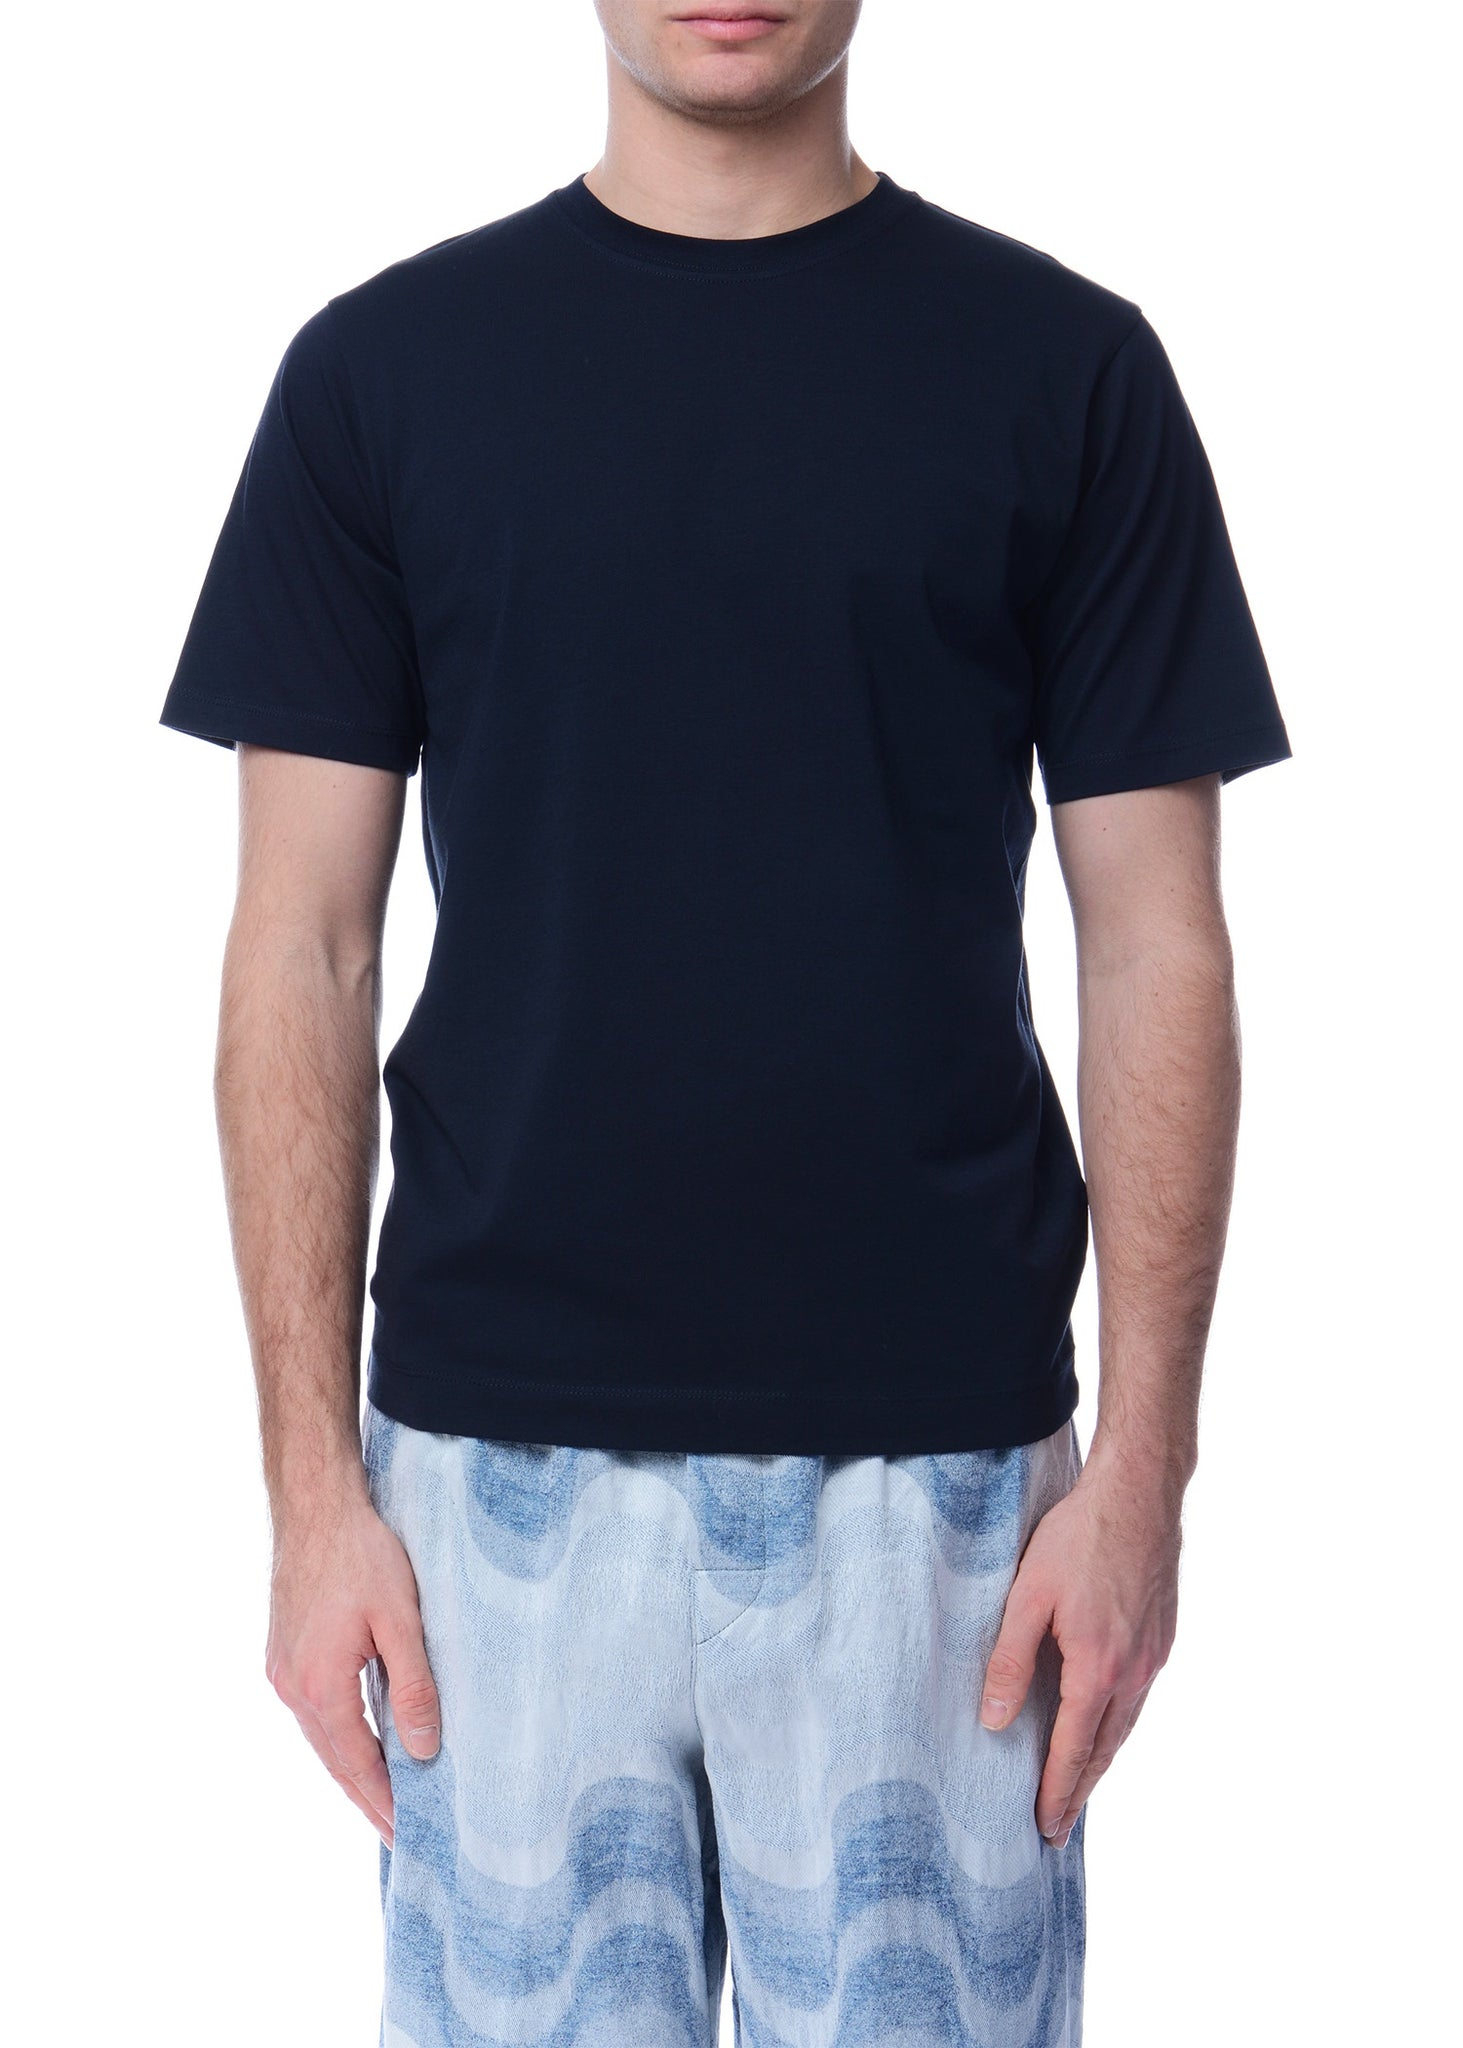 T-Shirt en Coton Marine|Navy Cotton T-shirt